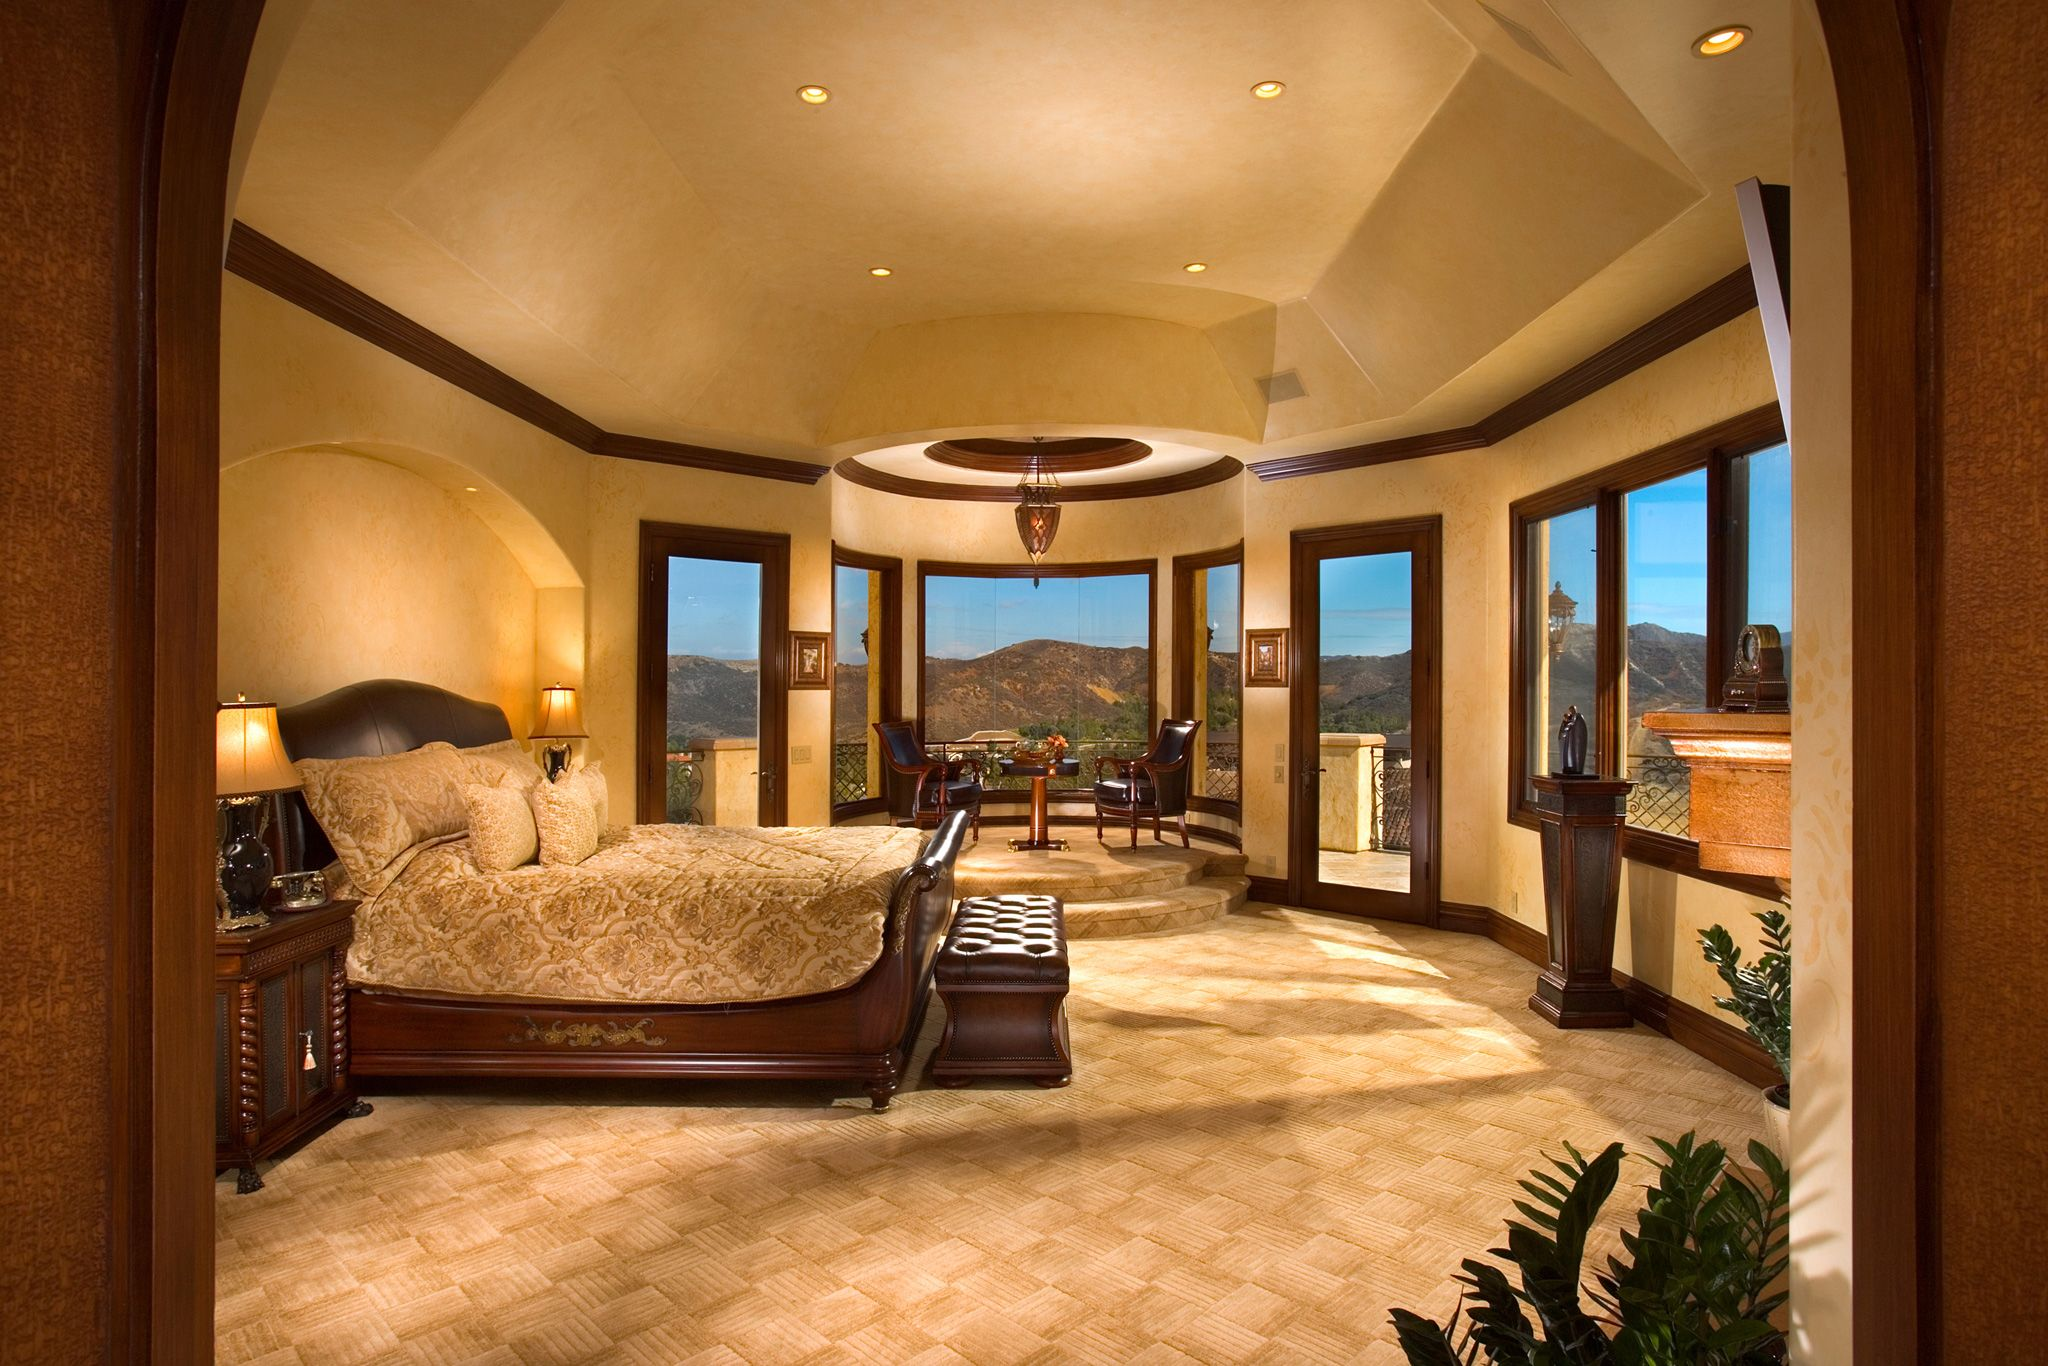 21 incredible master bedrooms design ideas luxury master for Master bedroom designs